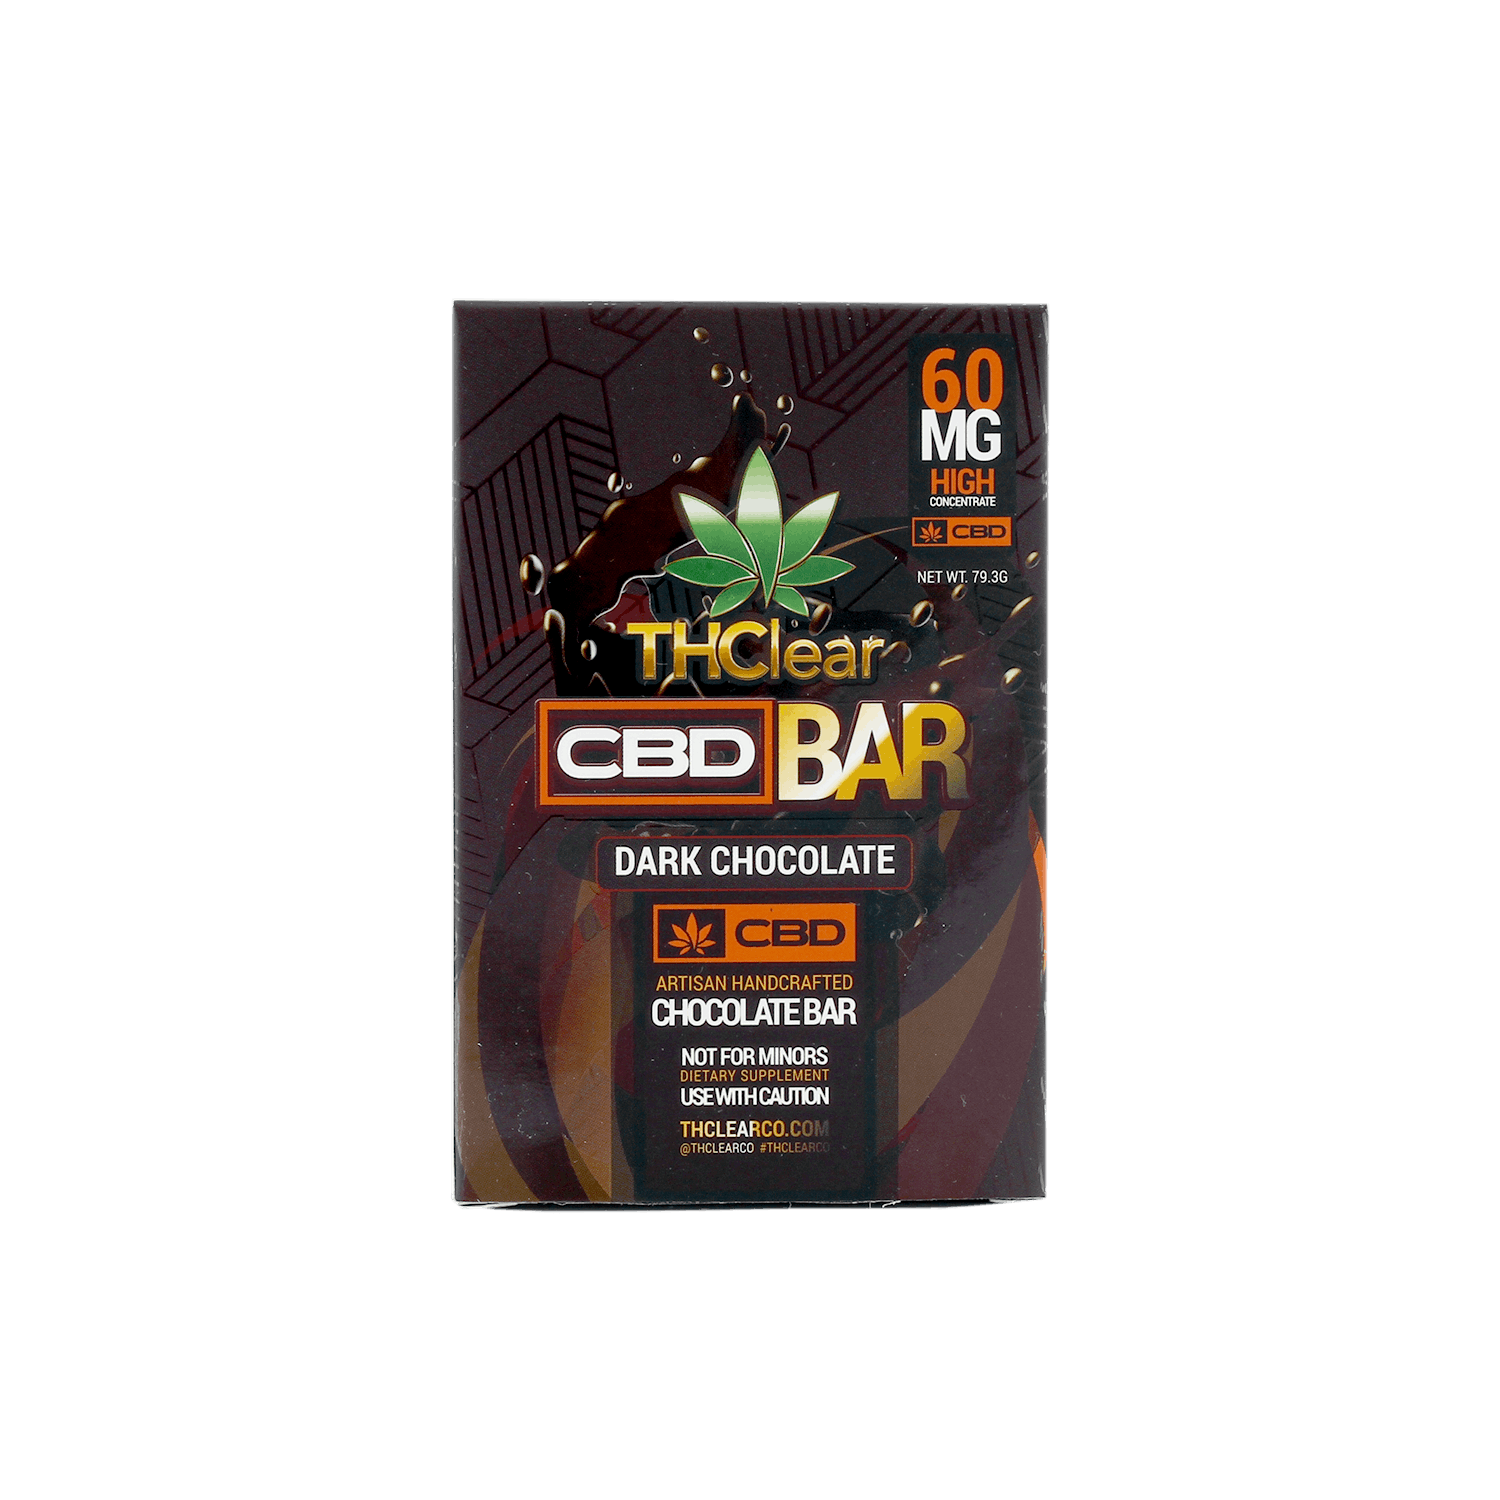 marijuana-dispensaries-hidden-jewel-in-anaheim-cbd-dark-chocolate-bar-60mg